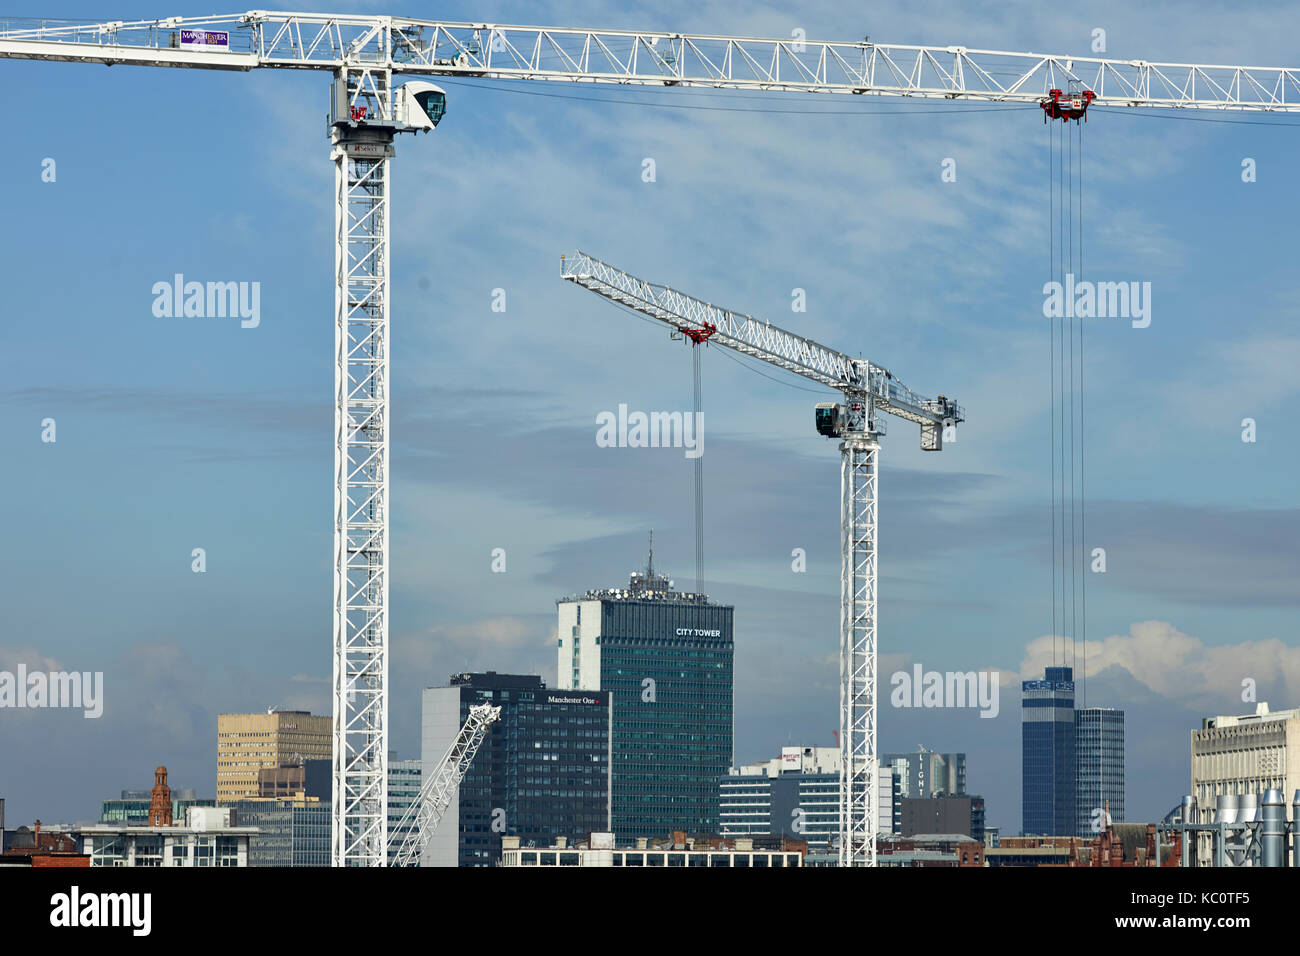 Manchester city centre skyline frames by tower cranes - Stock Image